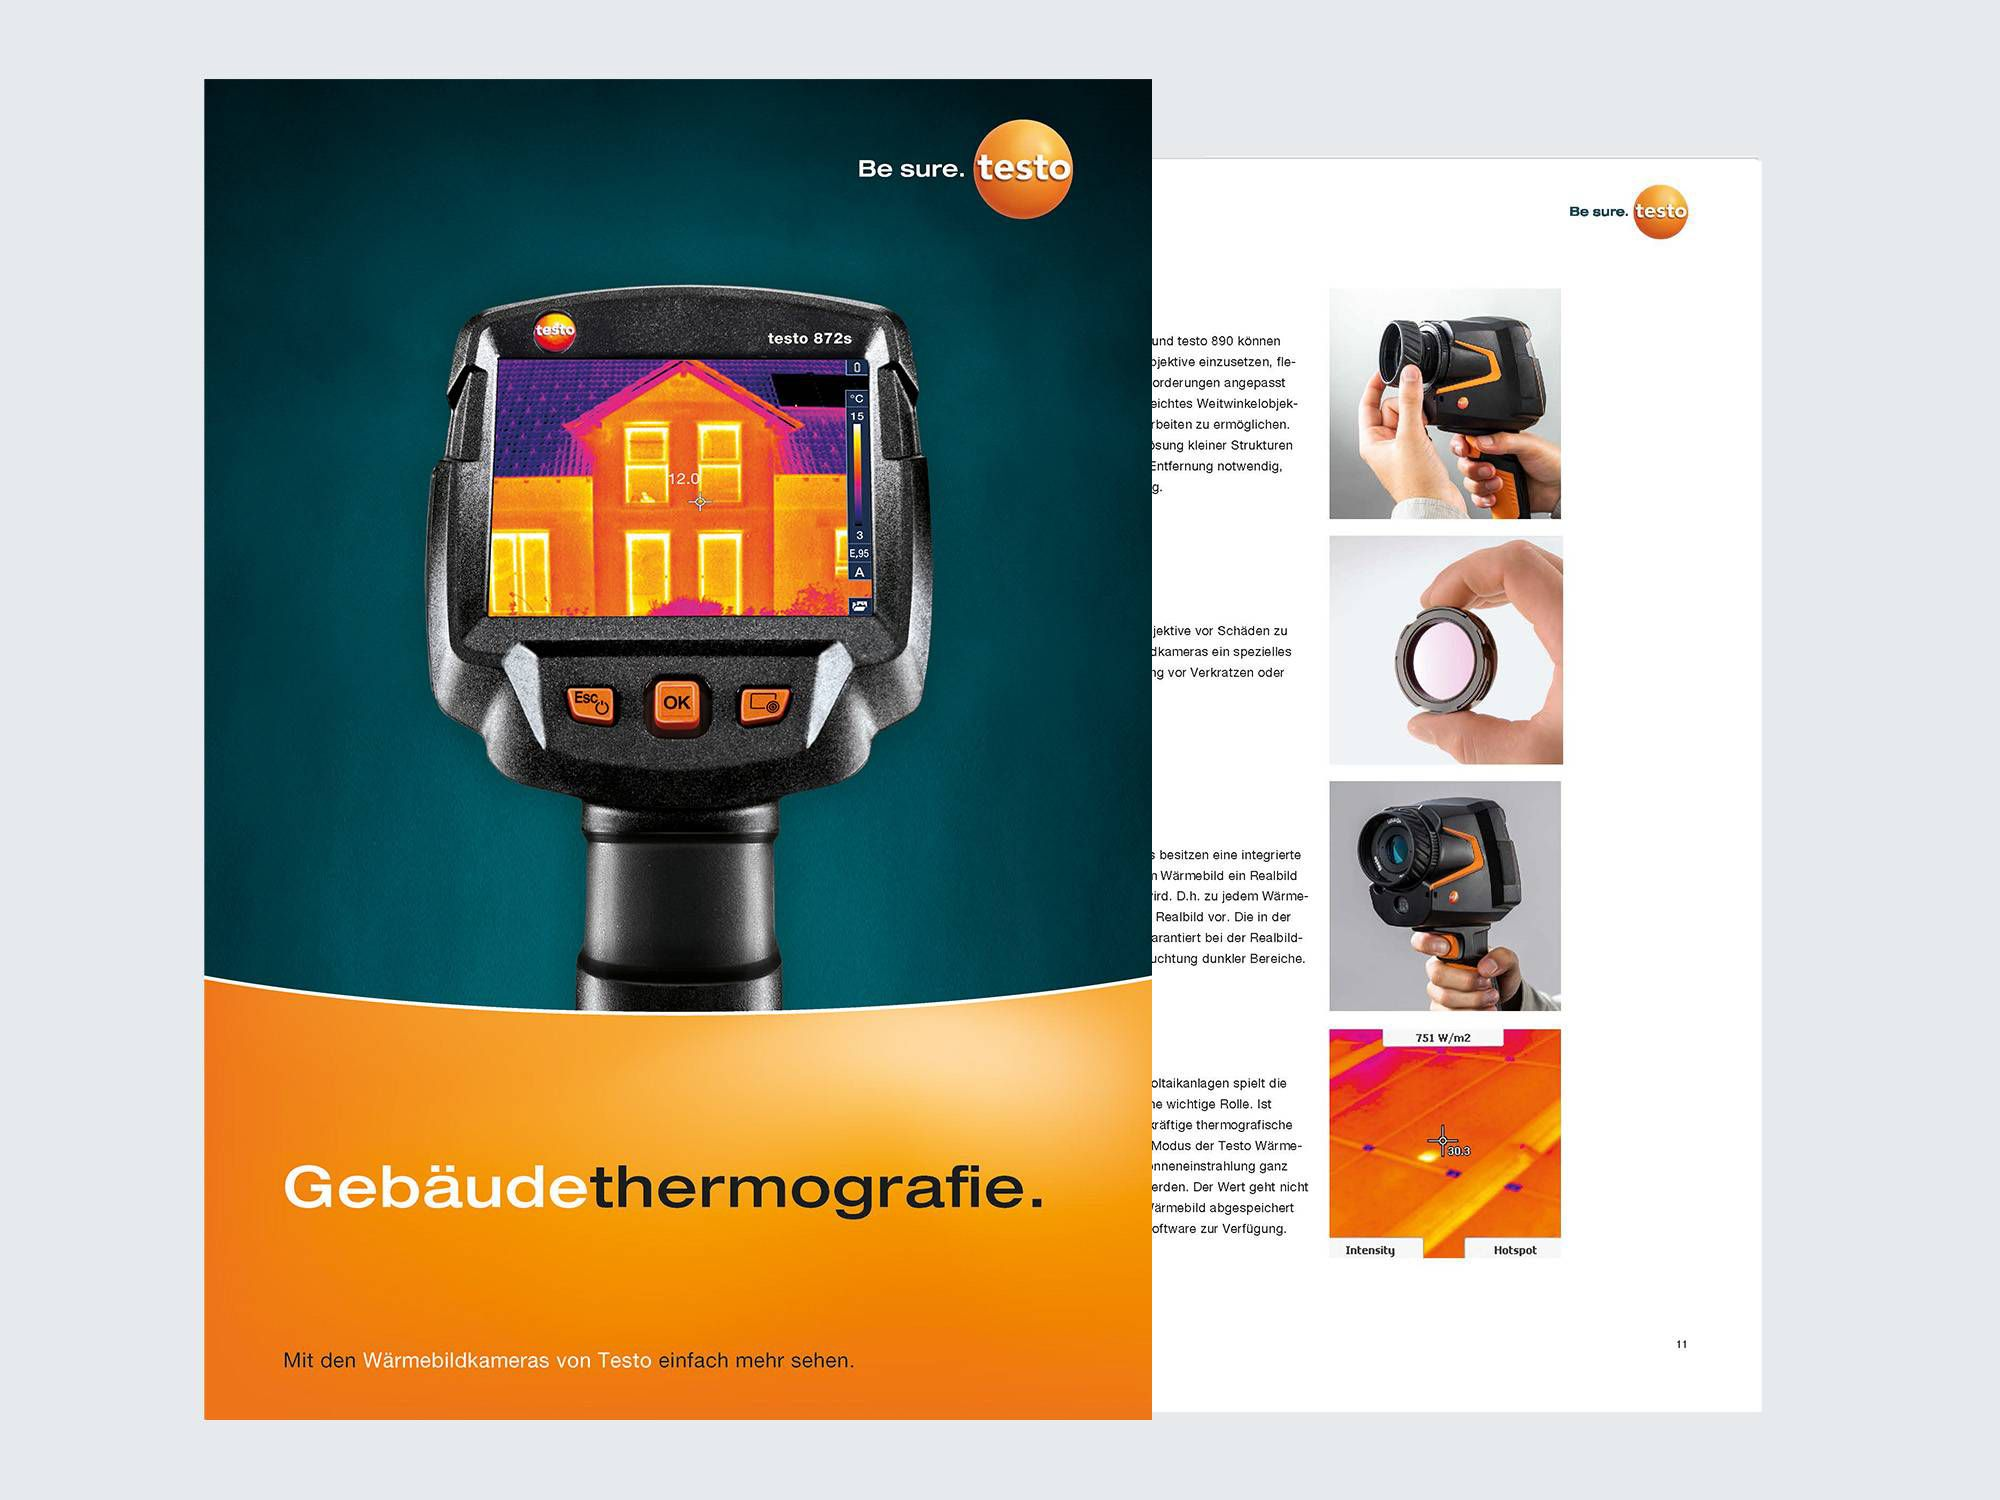 fibel-gebaeudethermografie-download-vorschau.jpg